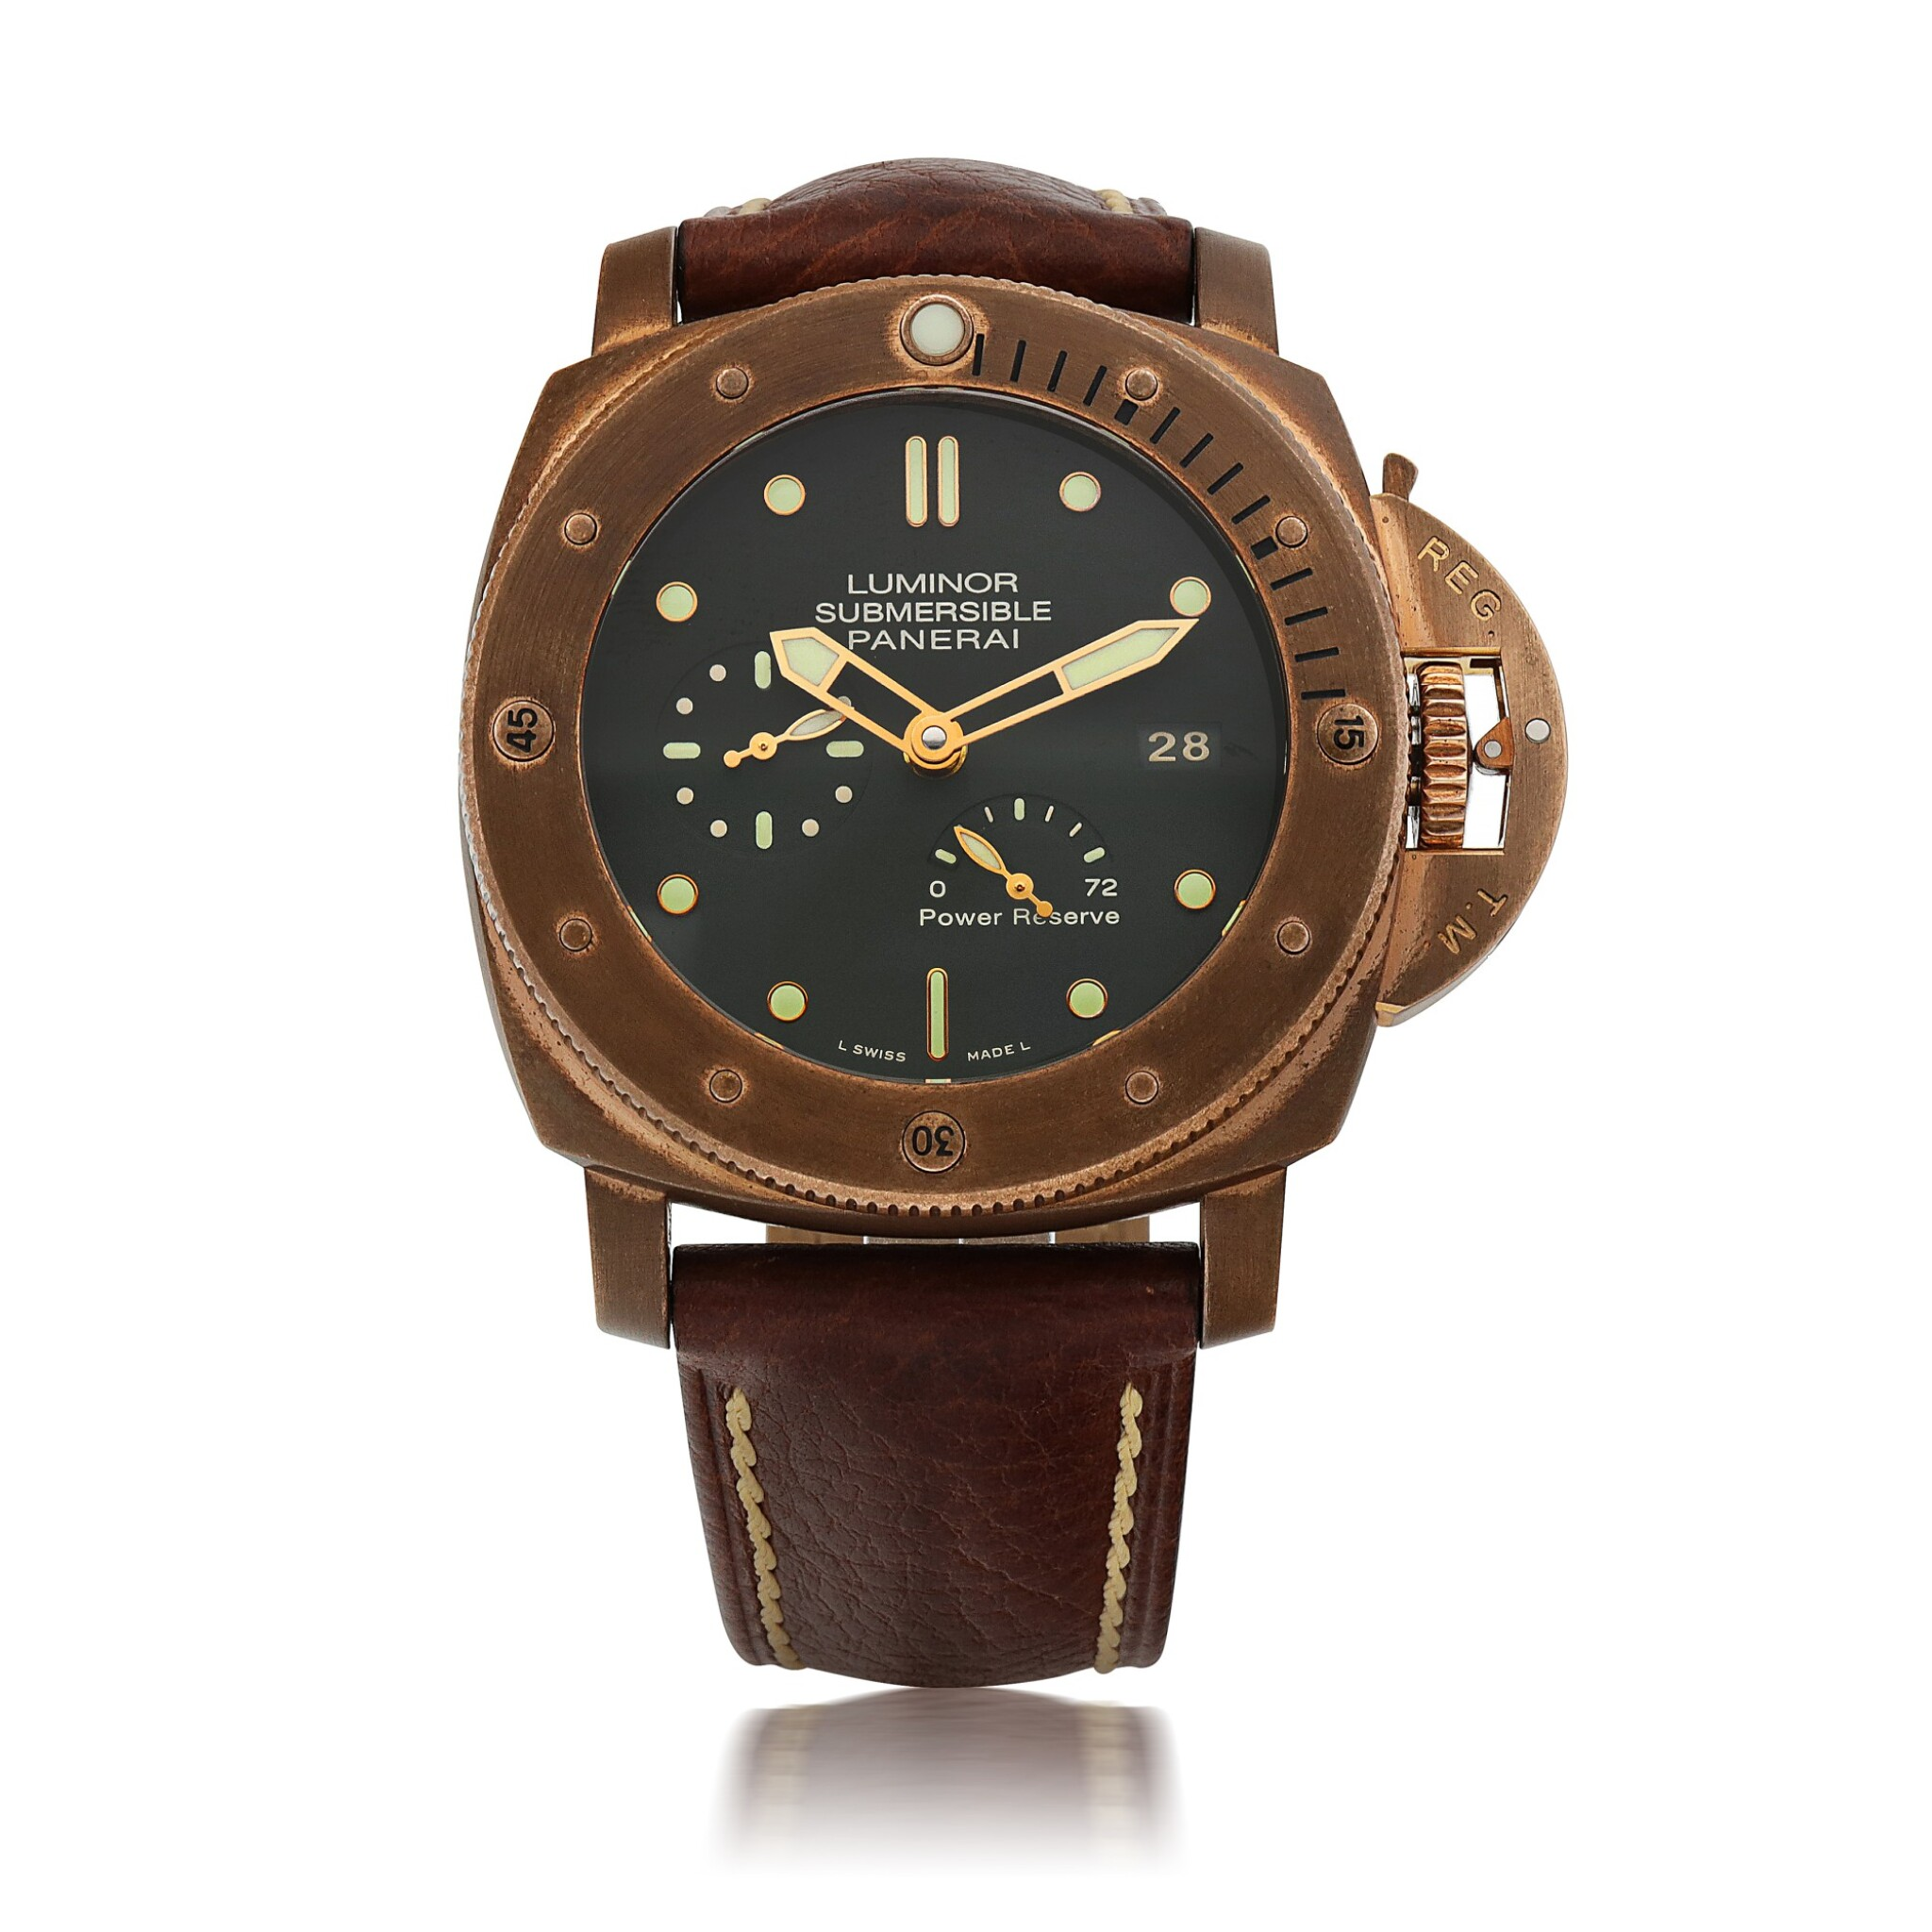 View full screen - View 1 of Lot 904. LUMINOR SUBMERSIBLE 1950 3-DAYS AUTOMATIC BRONZO, REF PAM00507 LIMITED EDITION BRONZE WRISTWATCH WITH DATE AND POWER-RESERVE INDICATION CIRCA 2011.